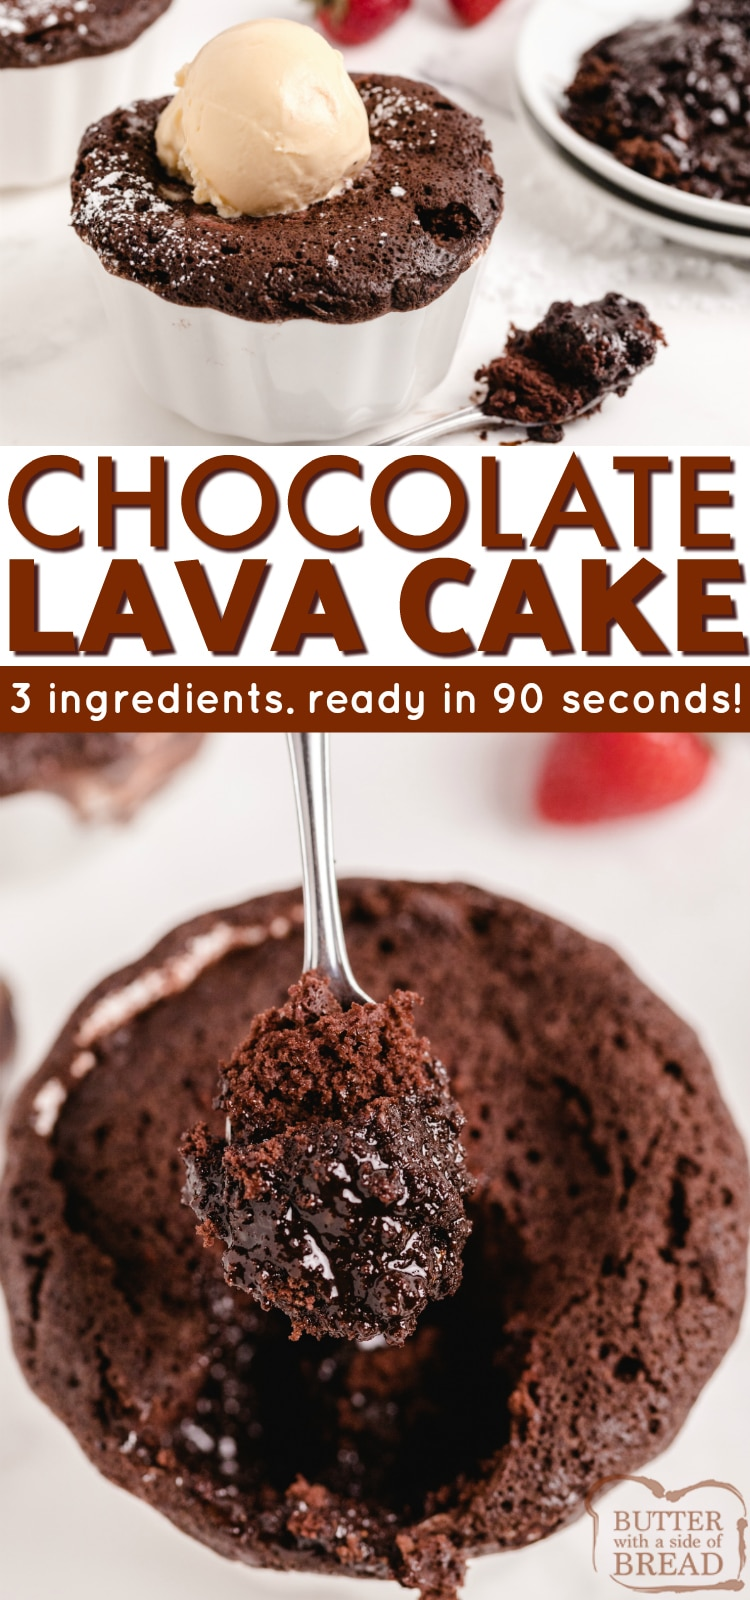 90 Second Chocolate Lava Cake made with 3 ingredients in less than 2 minutes. Fastest chocolate cake recipe ever with a molten lava fudge filling!